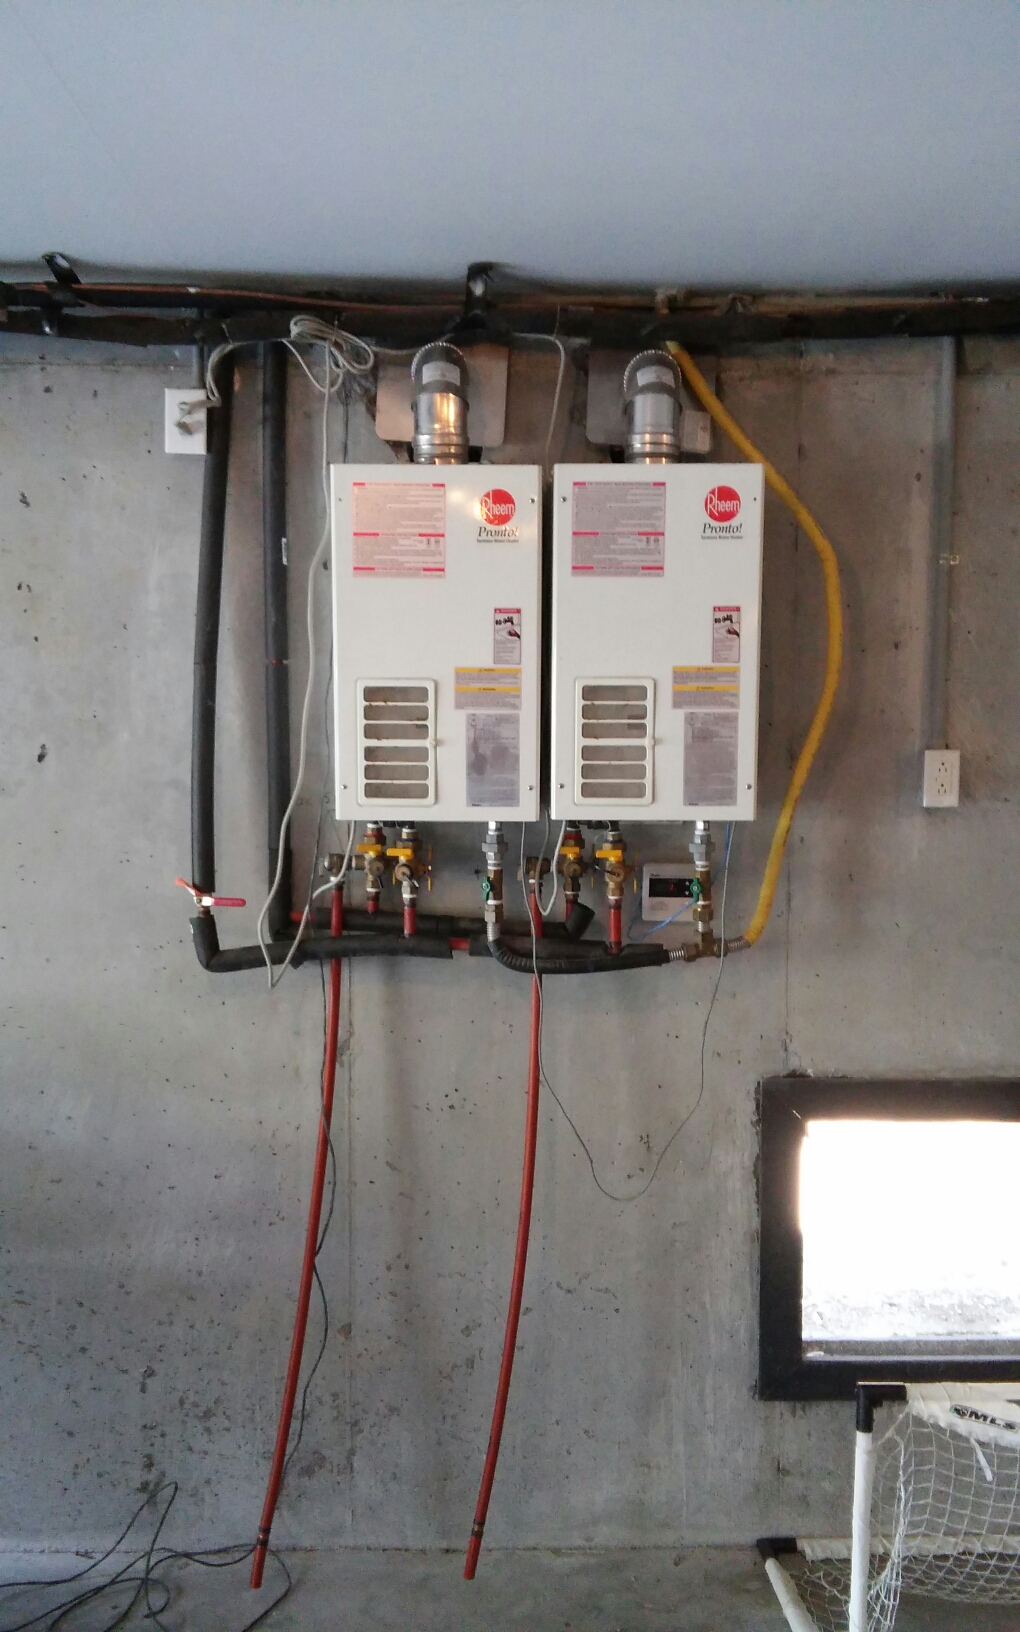 Isle Of Palms, SC - Two rheem tankless water heaters not heating water. Replaced with two navien tankless water heaters.